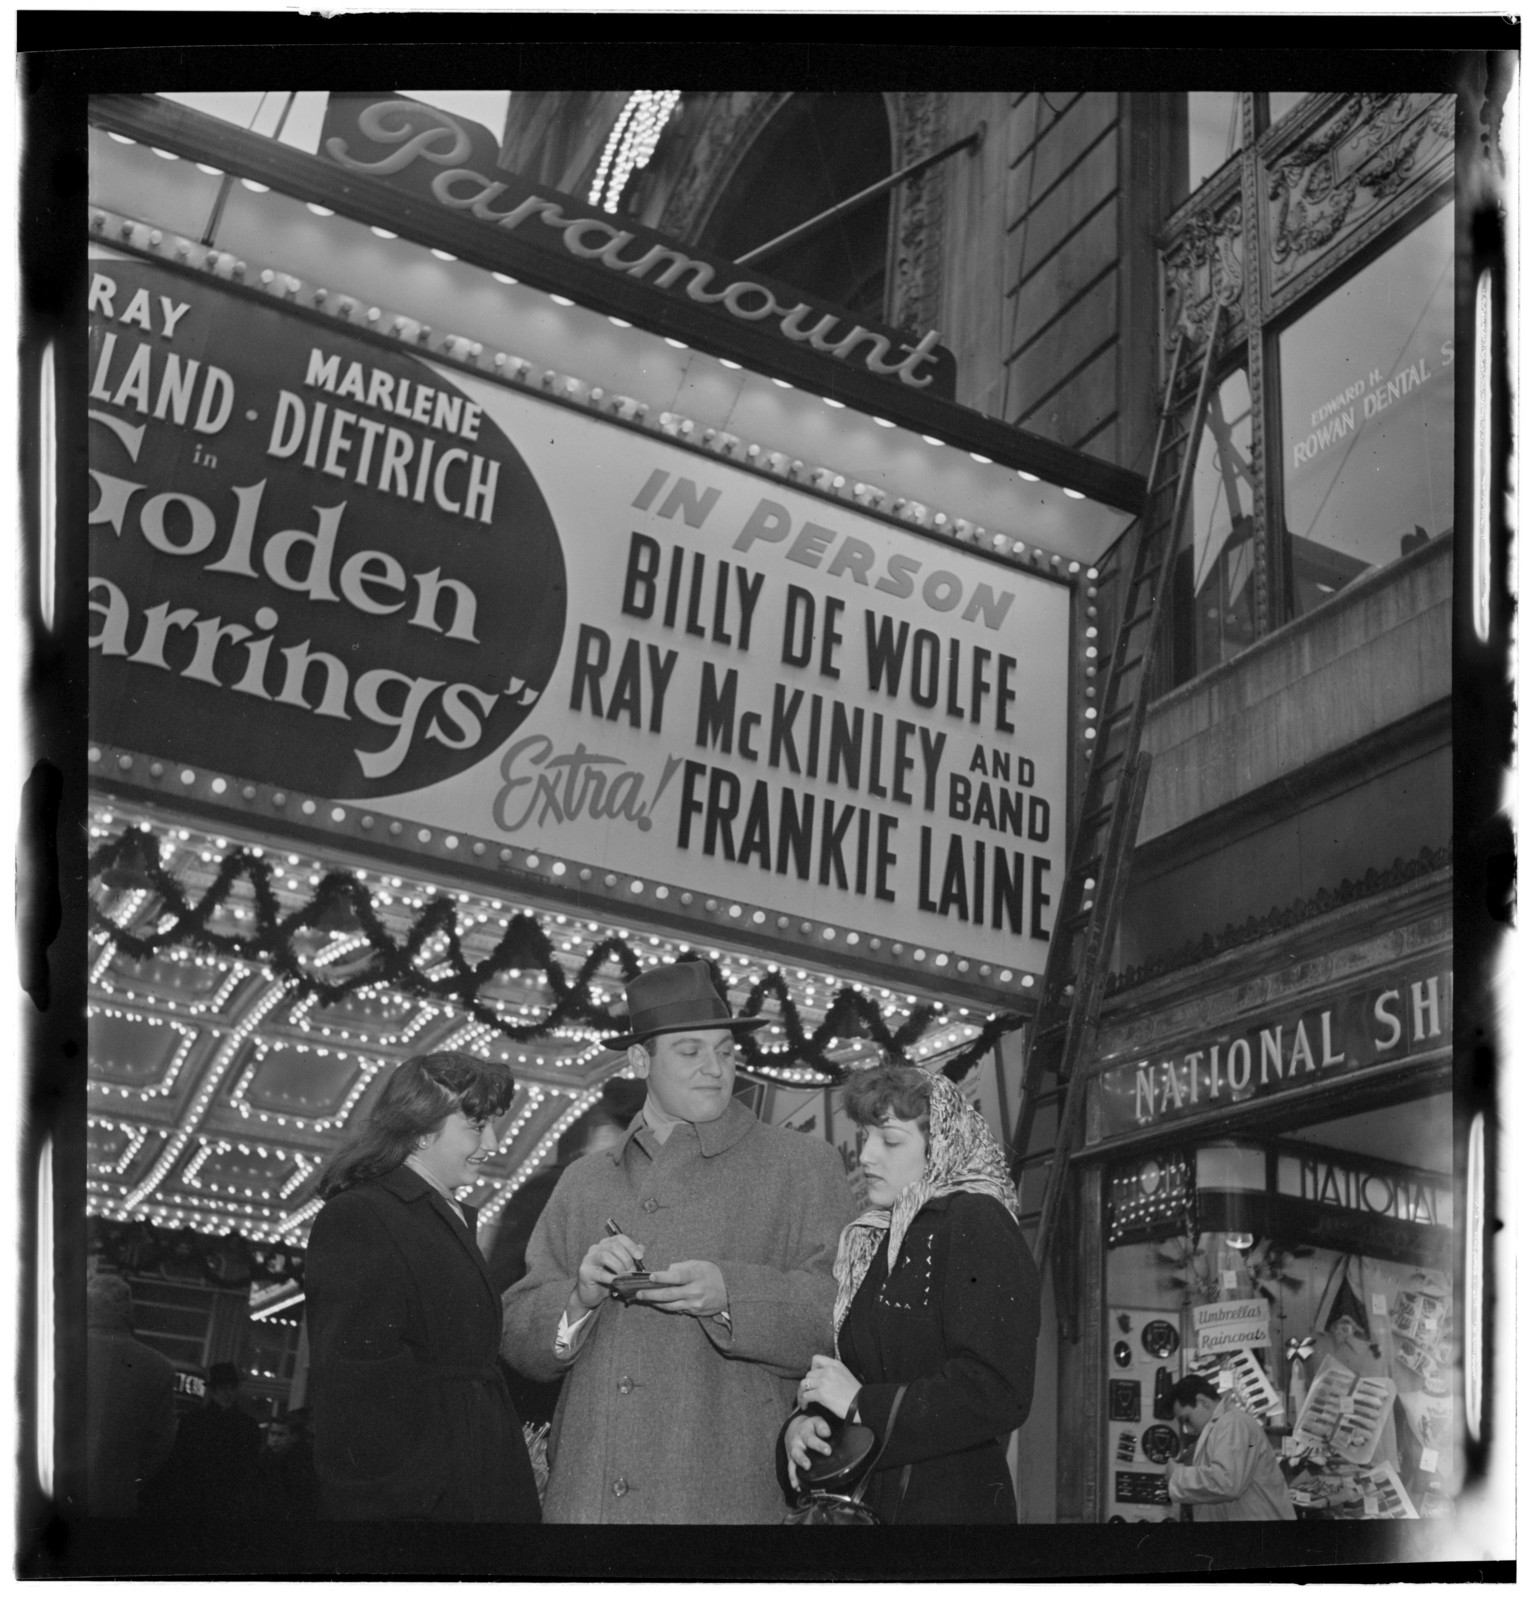 [Portrait of Frankie Laine, Paramount Theater, New York, N.Y., between 1946 and 1948]